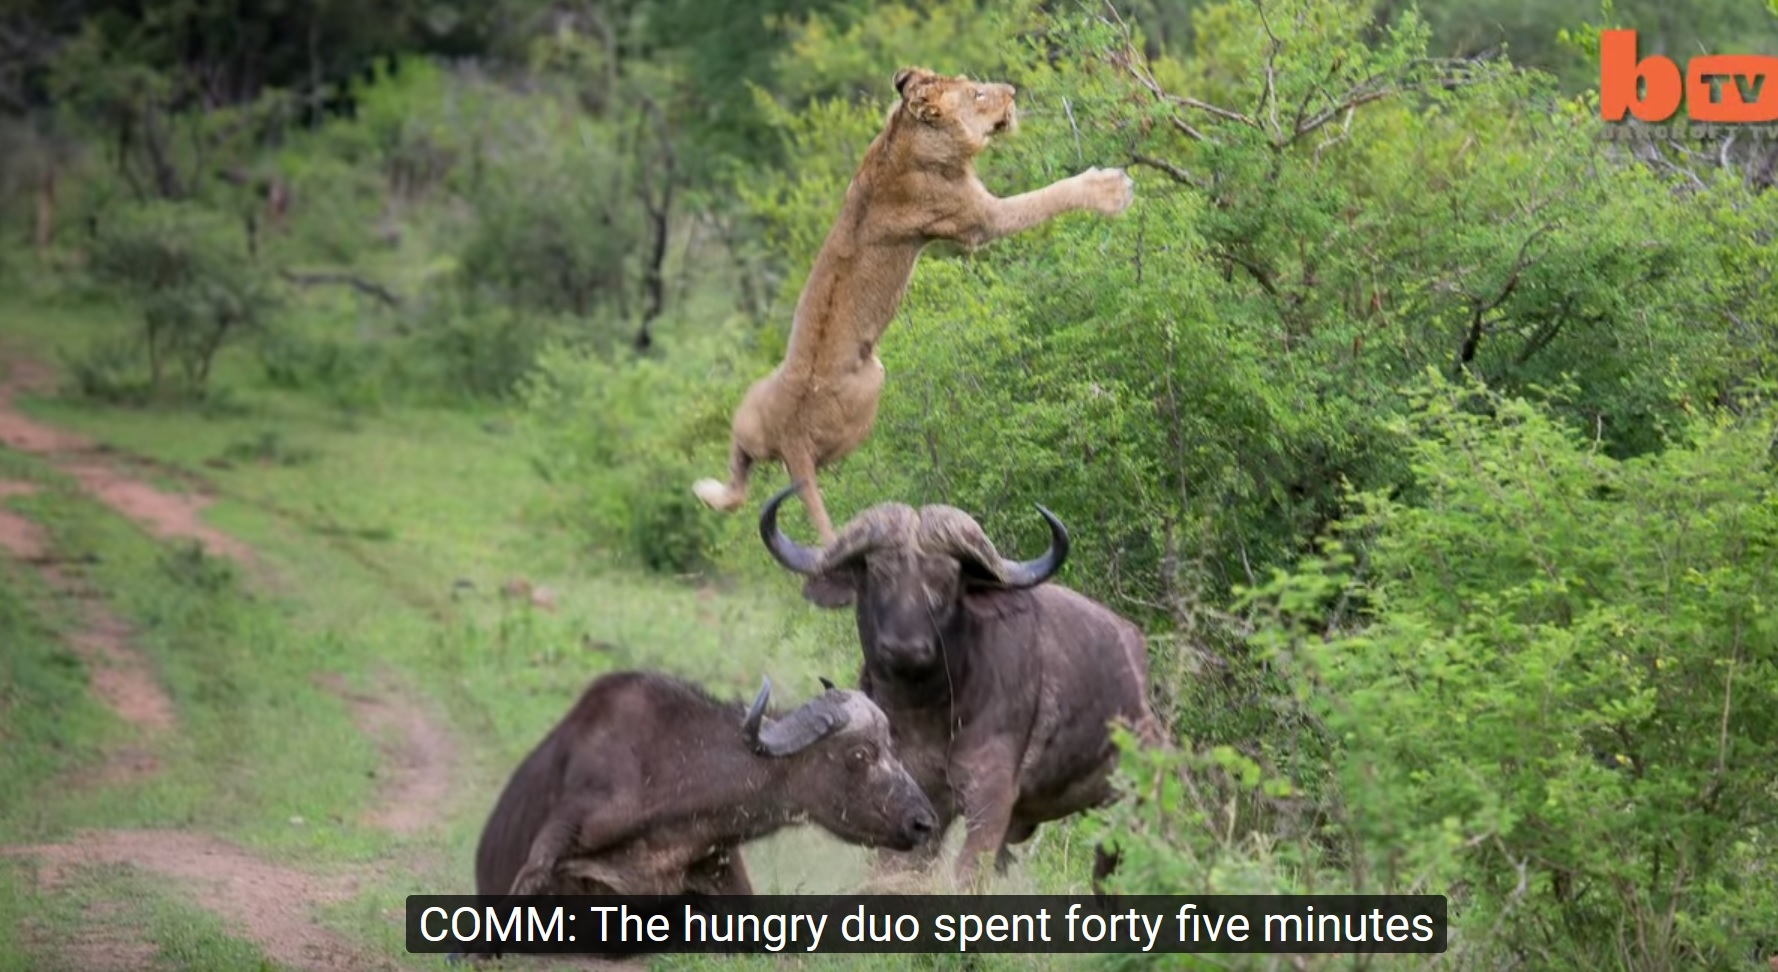 Buffalo Launches Lion Into Air